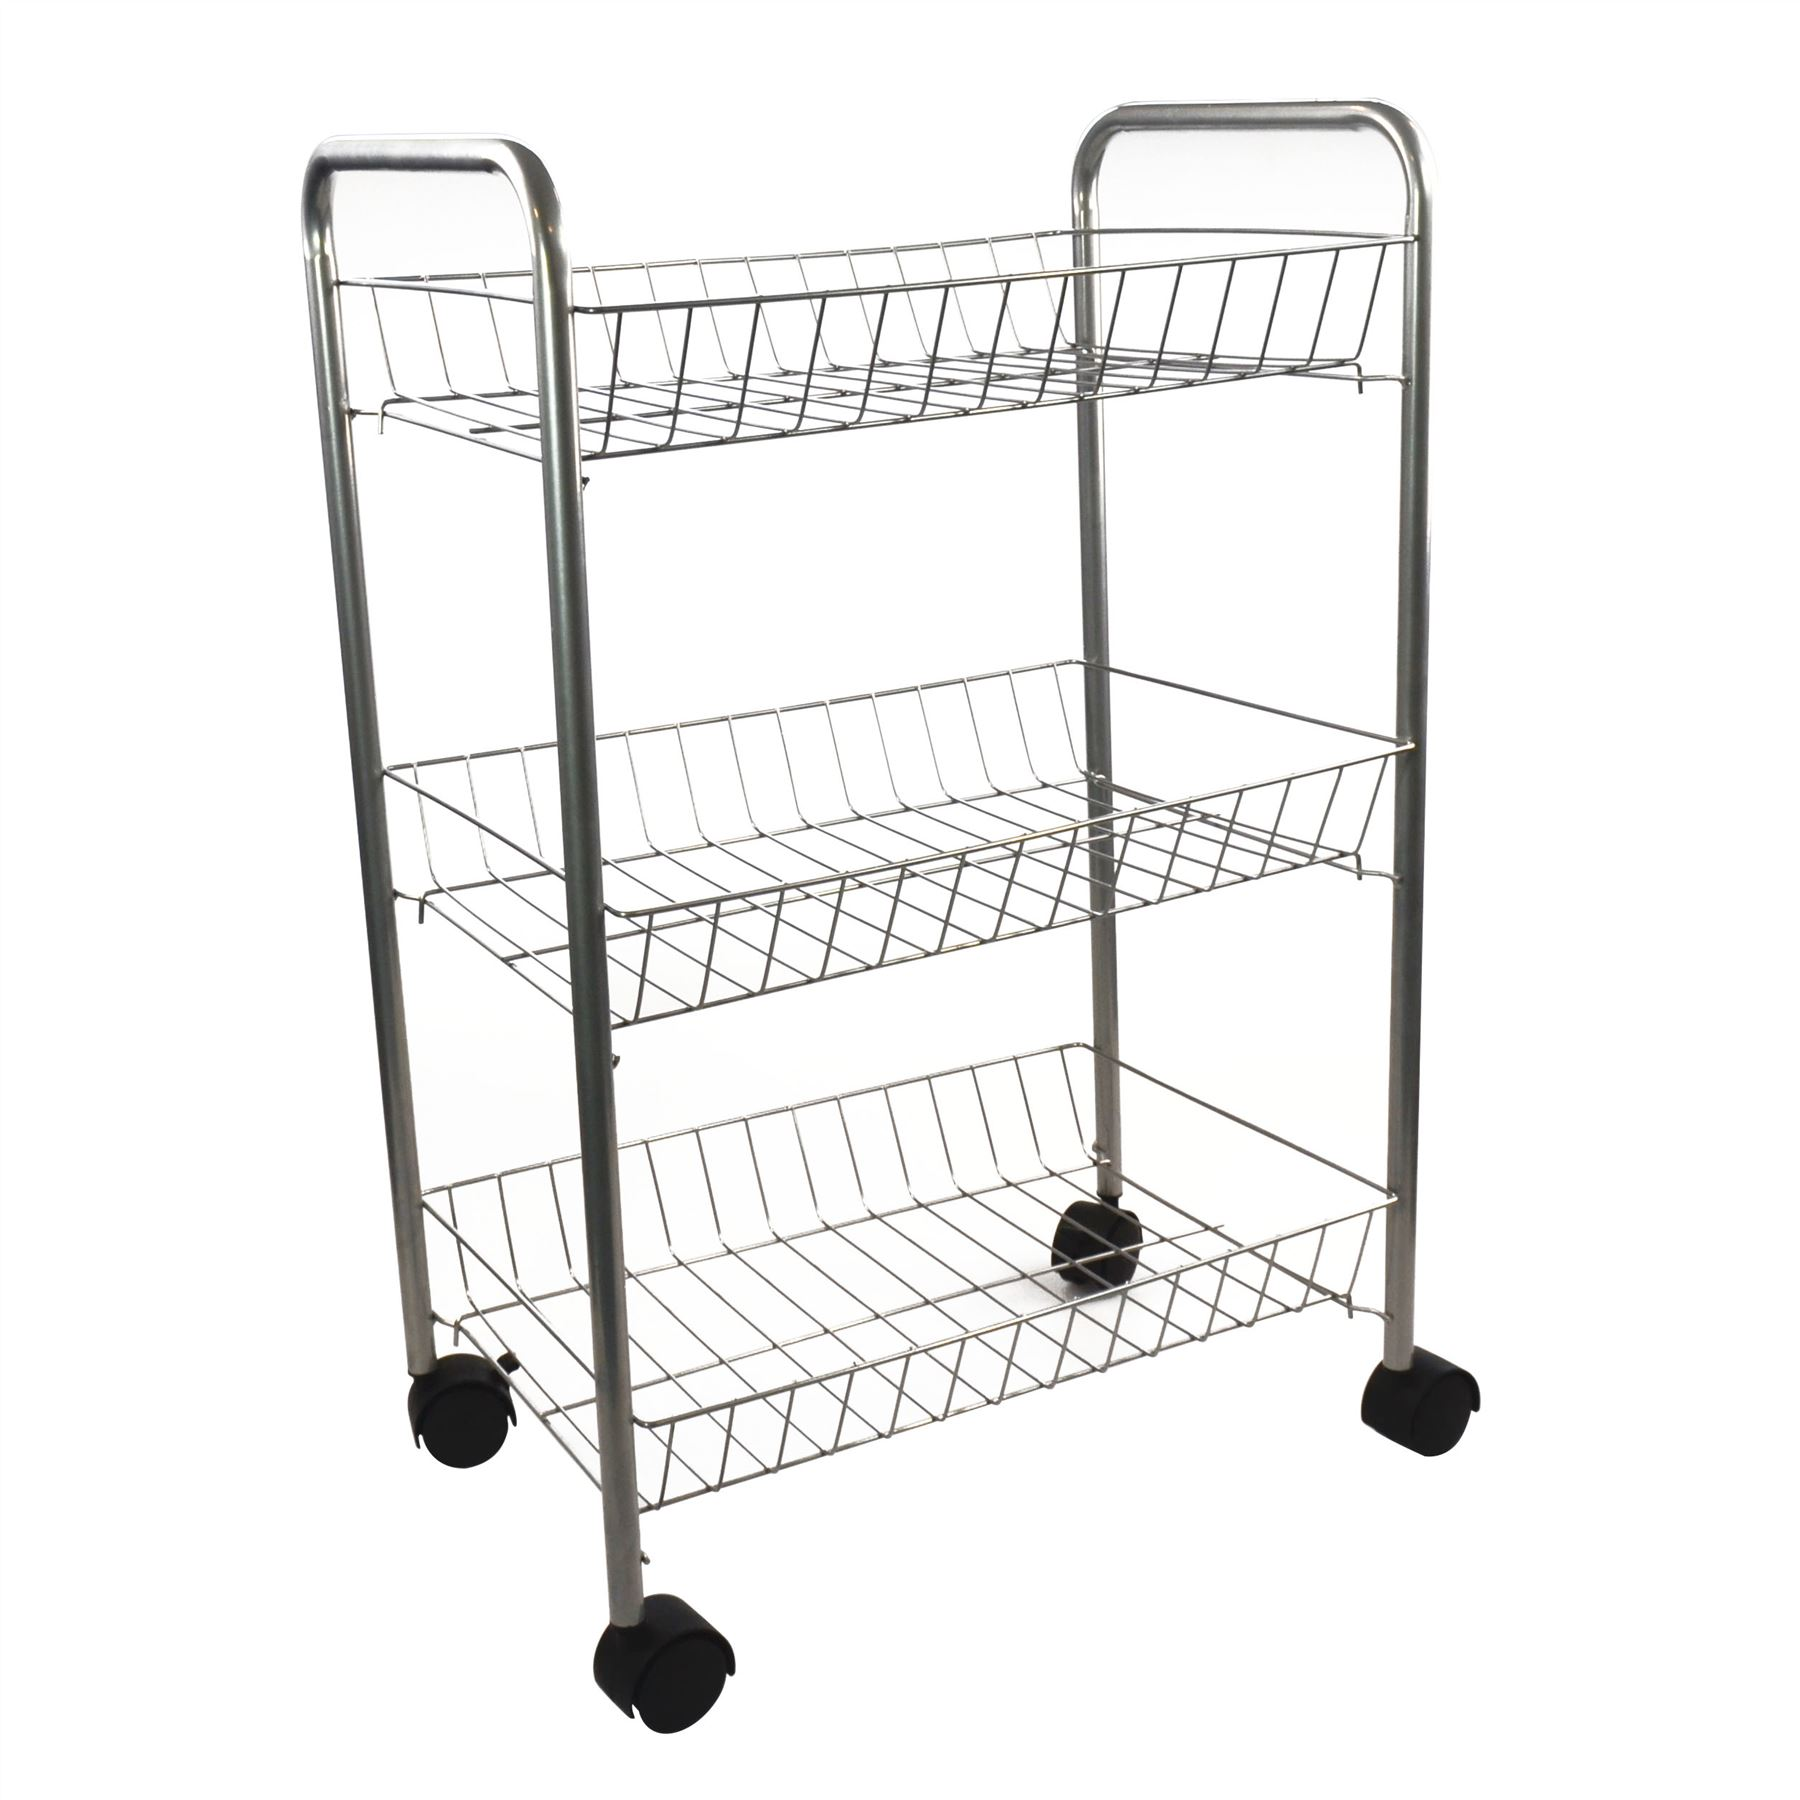 3 Tier Metal Kitchen Storage Trolley Ve Able Fruit Cart Drawer